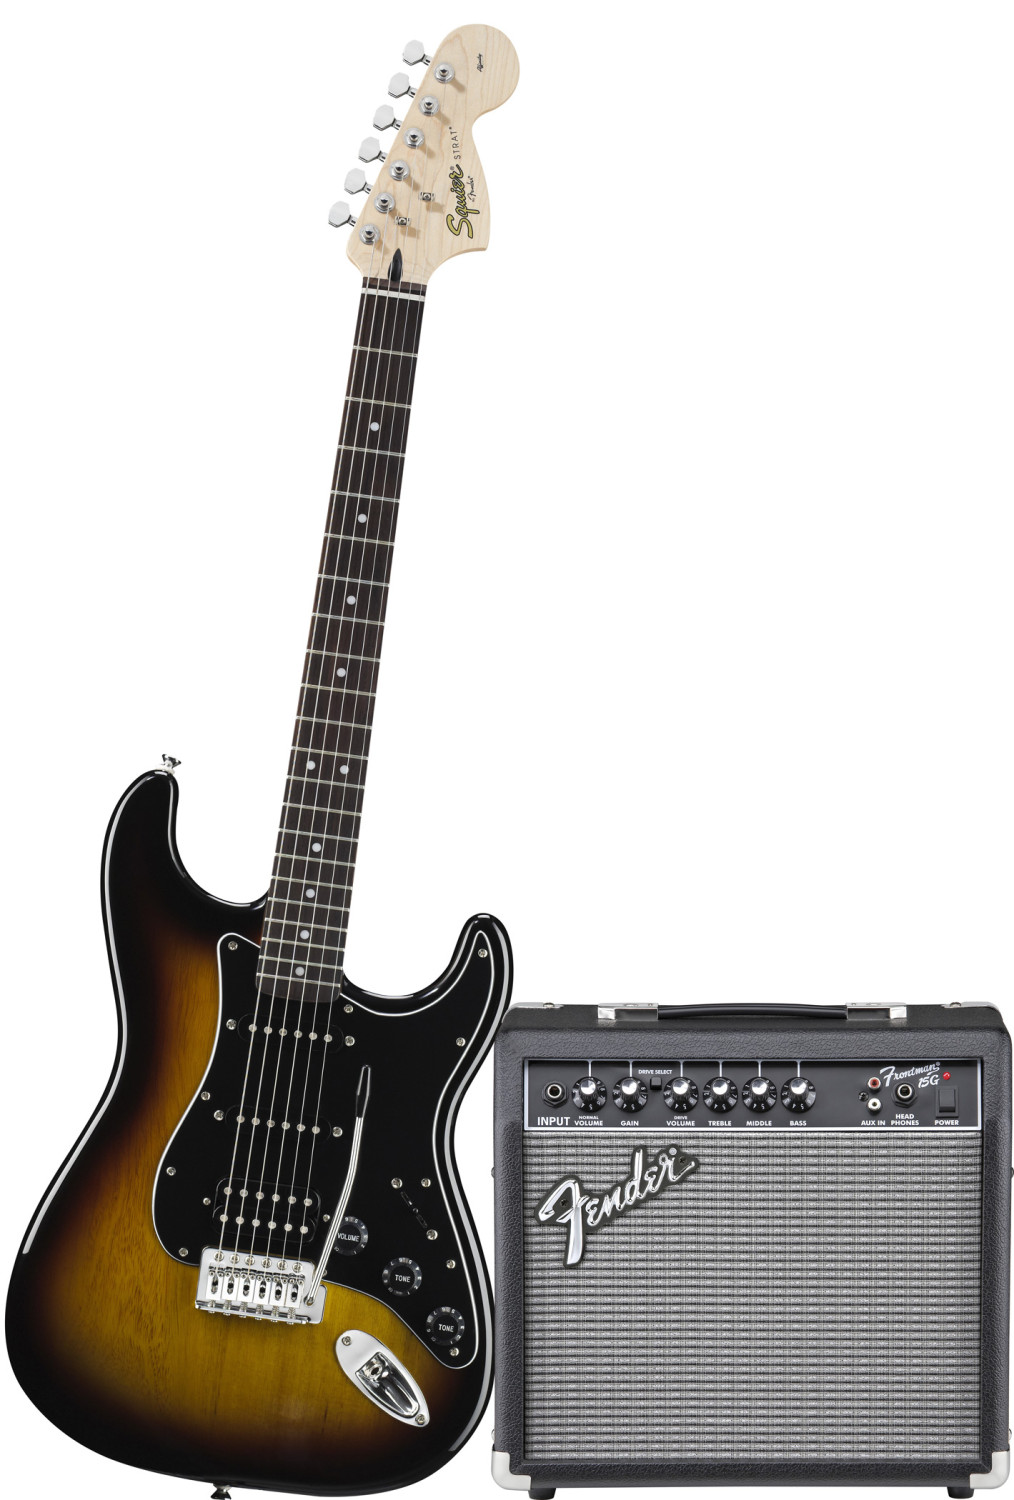 fender squier hss stratocaster brown sunburst frontman 15g pack pro music. Black Bedroom Furniture Sets. Home Design Ideas